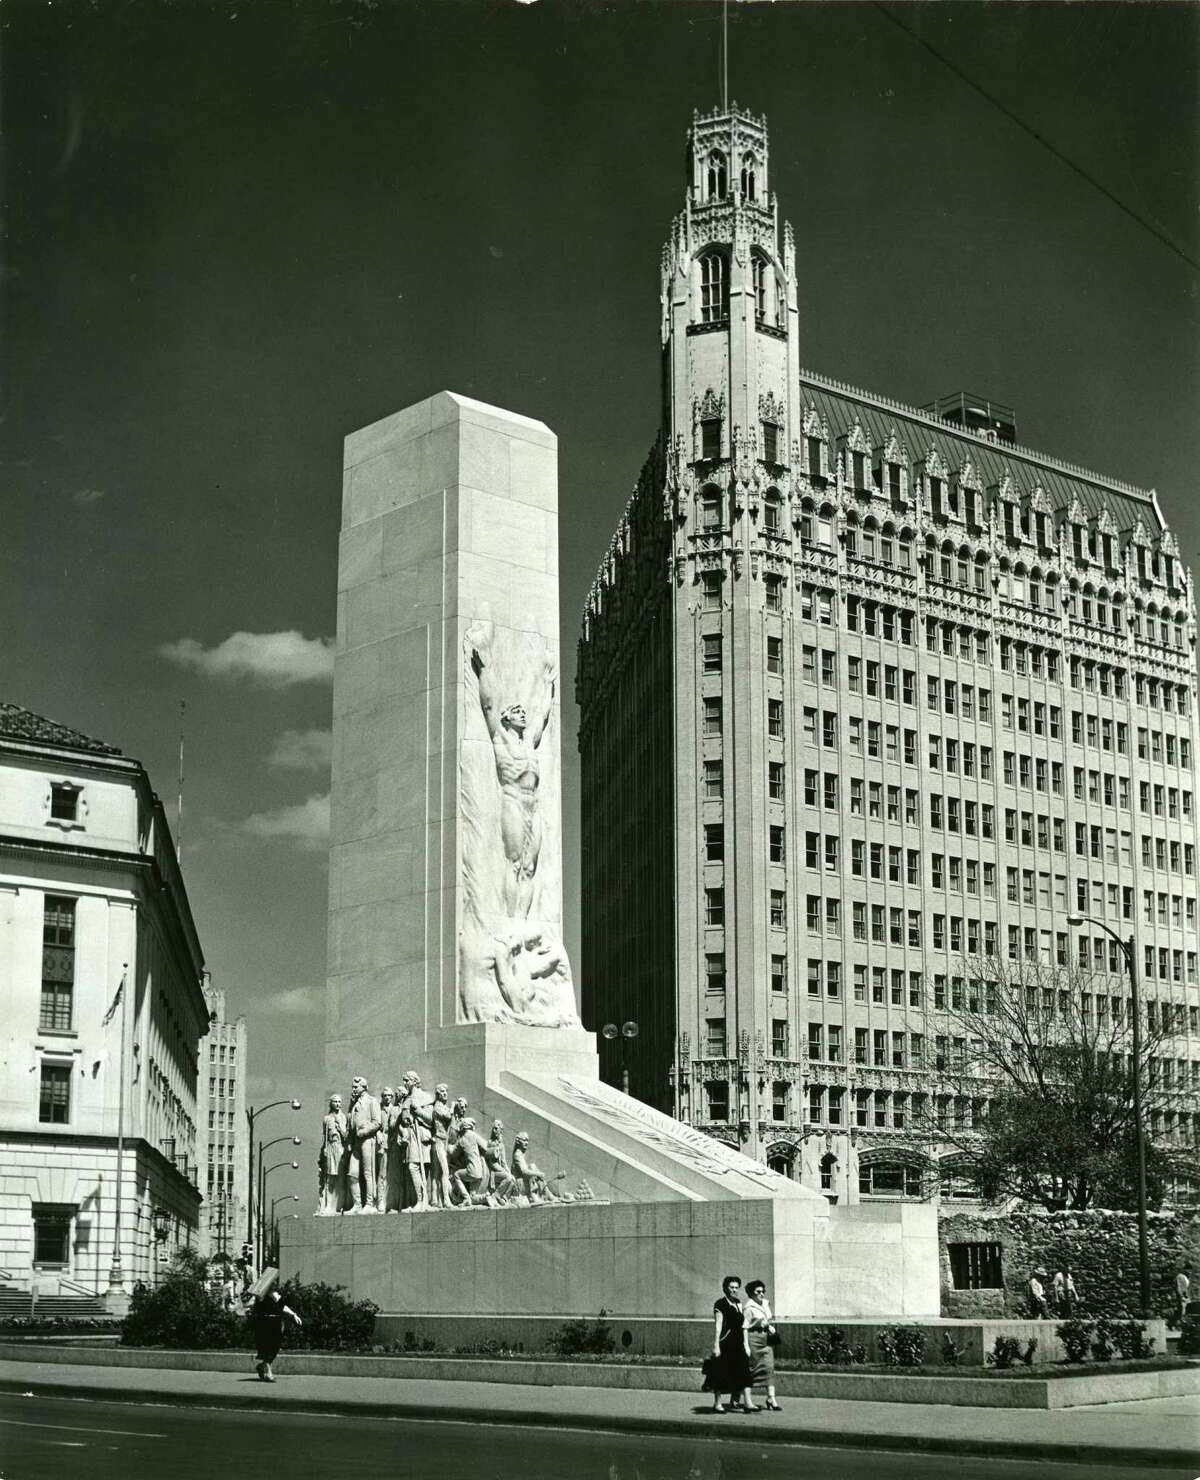 This undated photo shows the completed Alamo Cenotaph in Alamo Plaza.